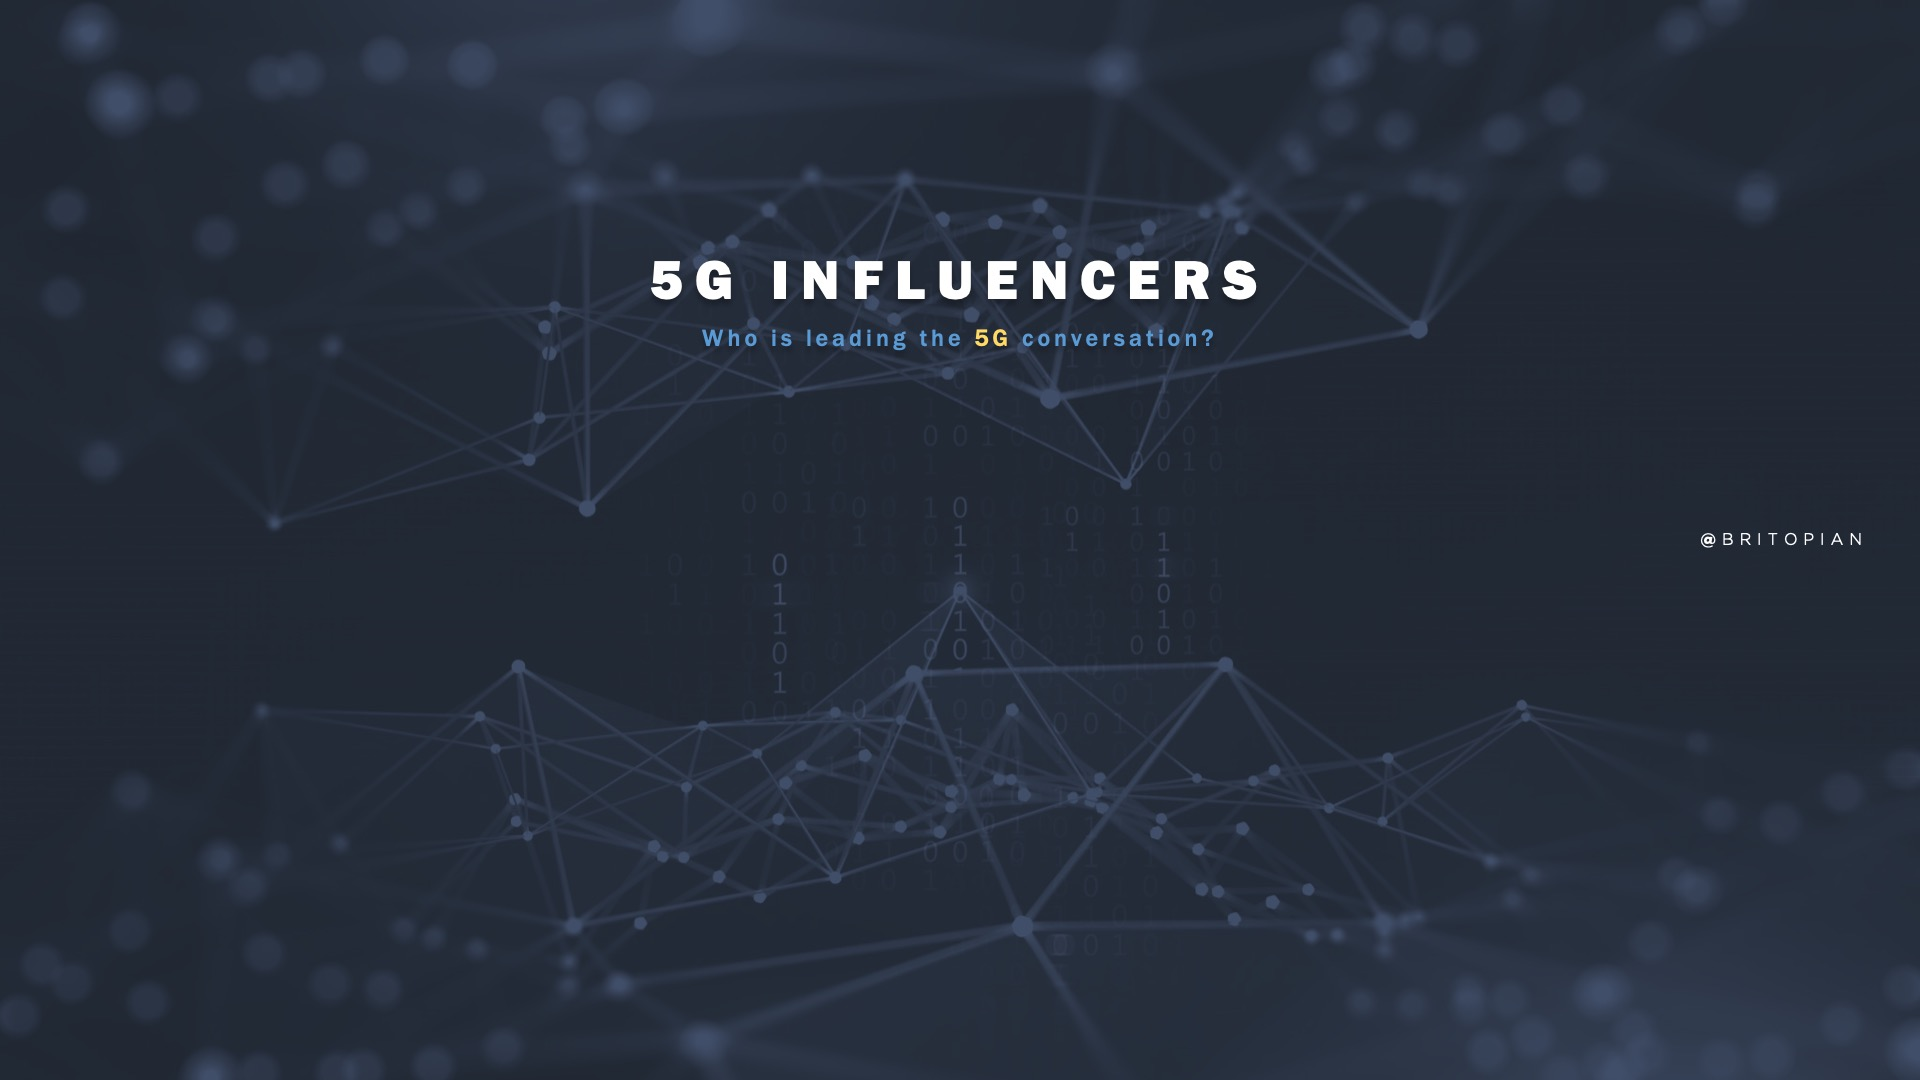 5G Influencers: Who's Leading the 5G Network Conversation?